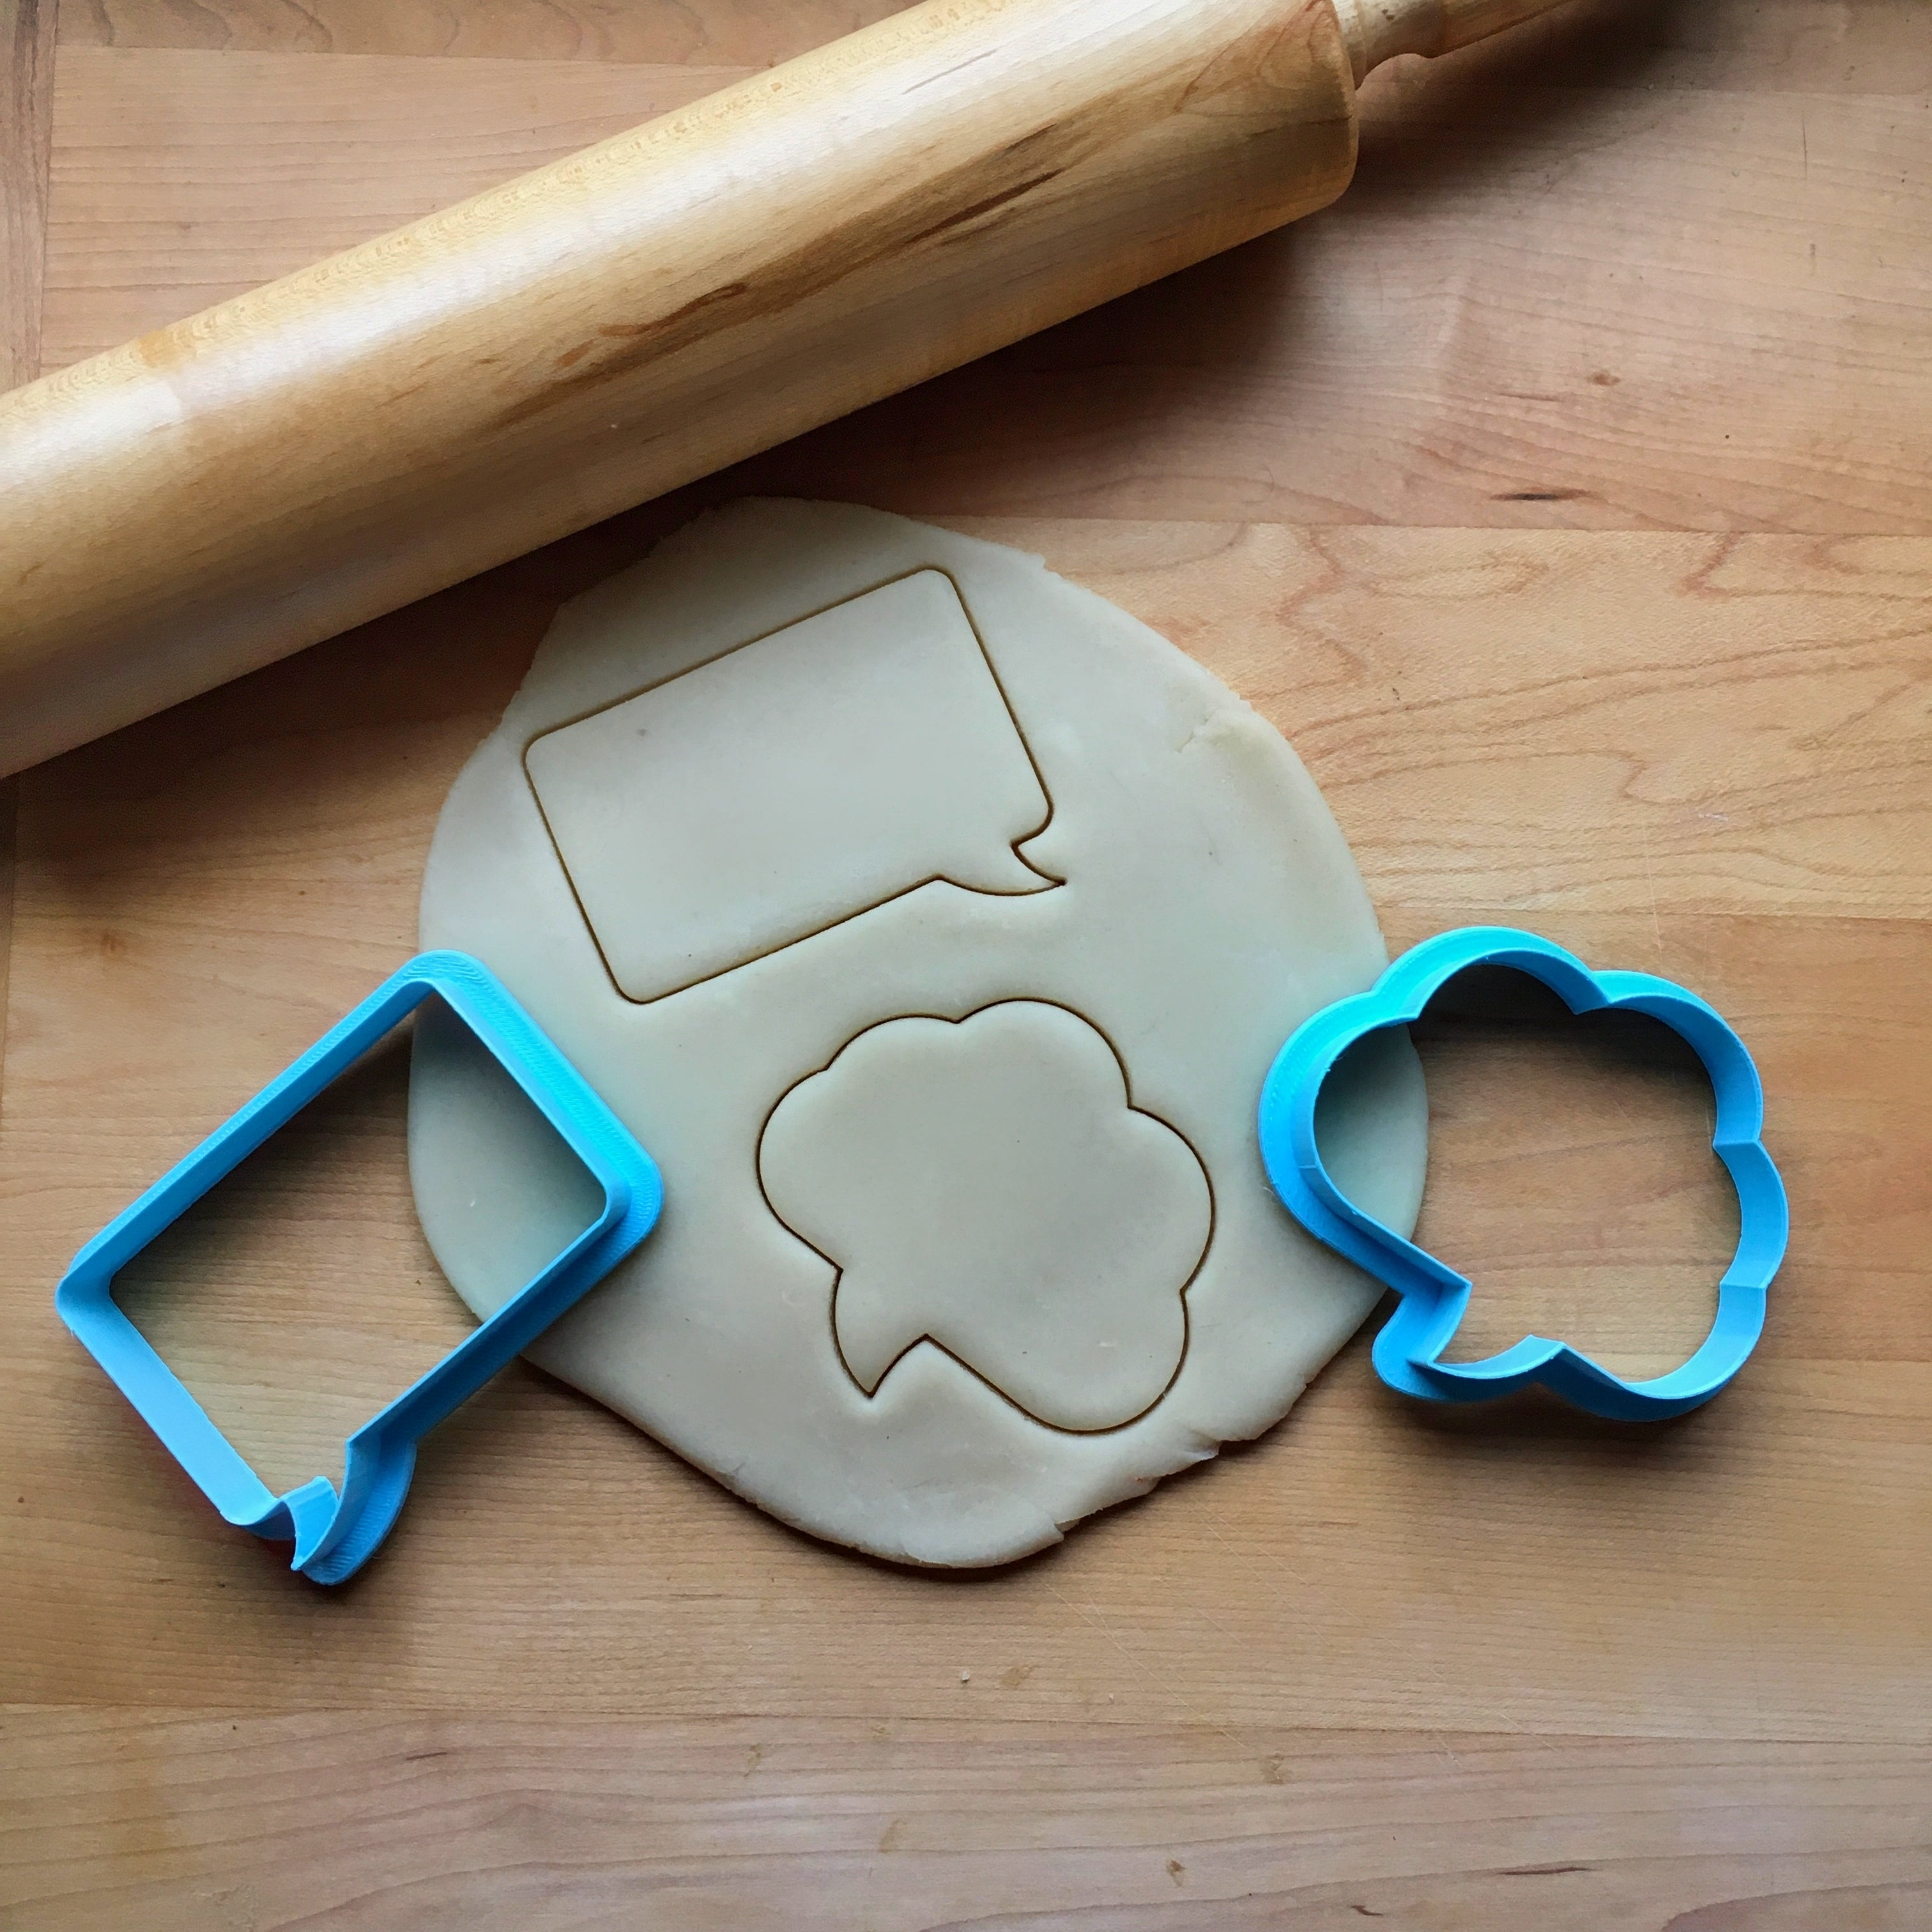 Set of 2 Speech Bubble Cookie Cutters/Dishwasher Safe